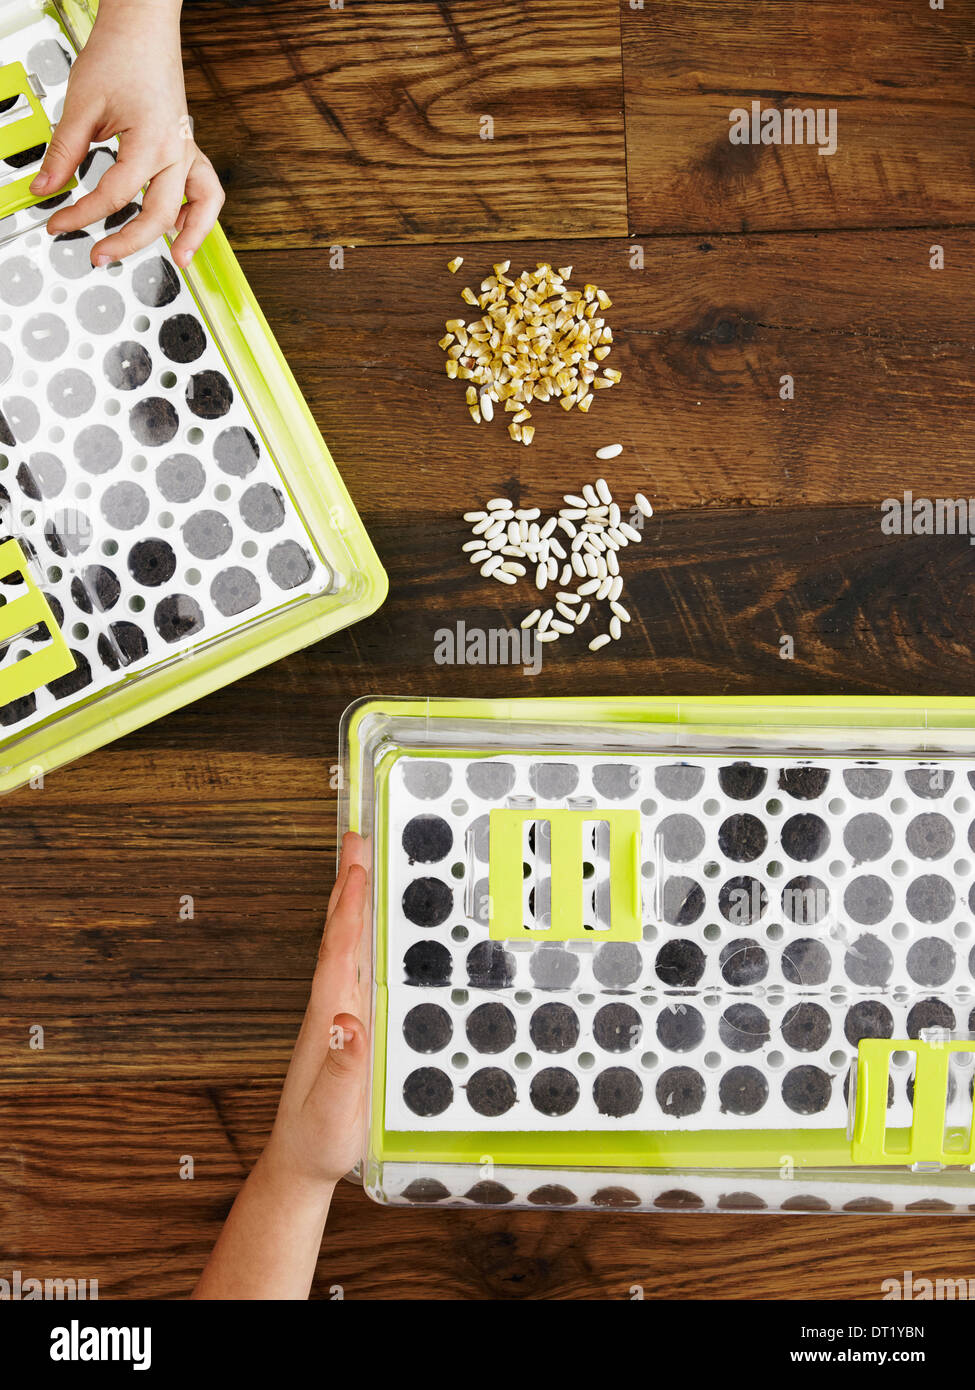 View from overhead of two children handling seed and planting a variety of seeds into a seed growing tray - Stock Image